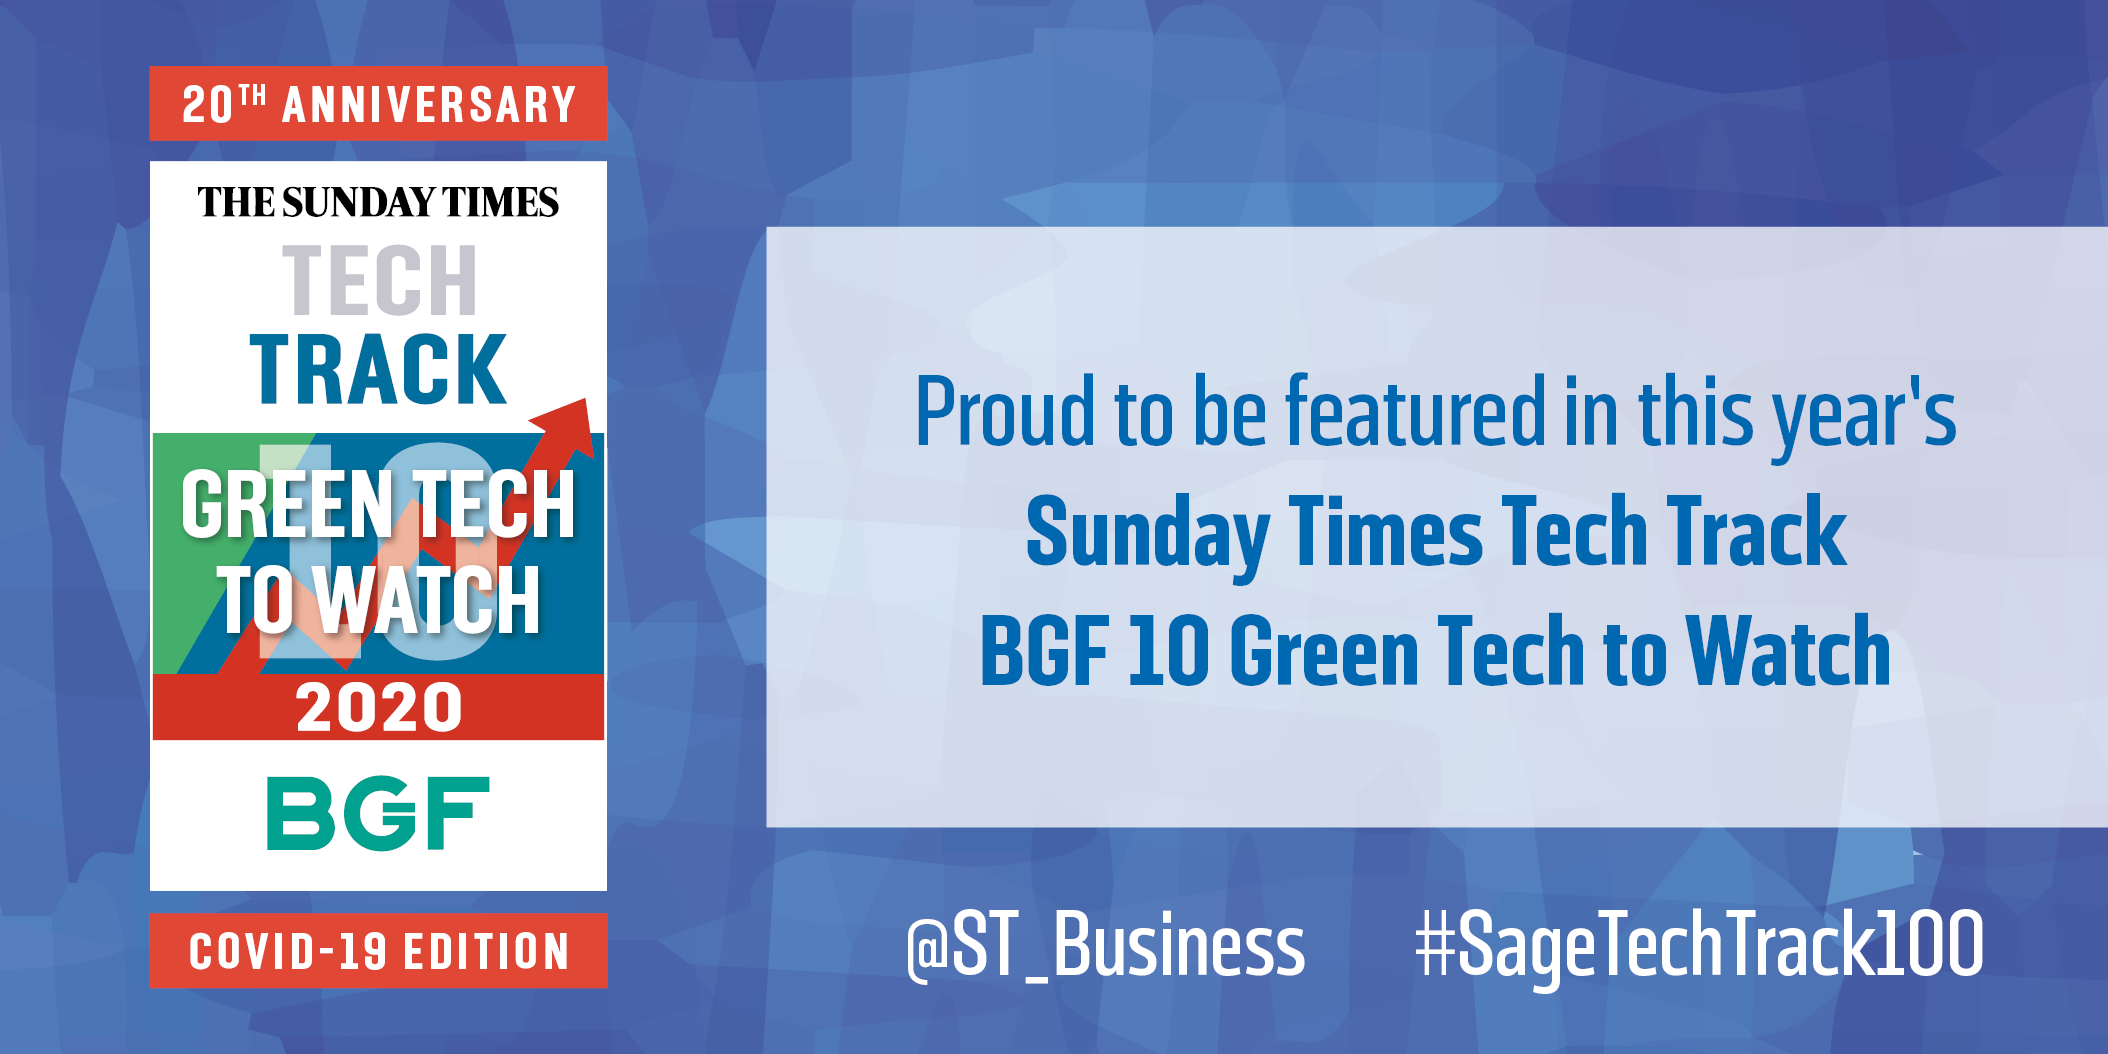 Carbon Clean named one of Britain's ten green tech companies to watch by the Sunday Times